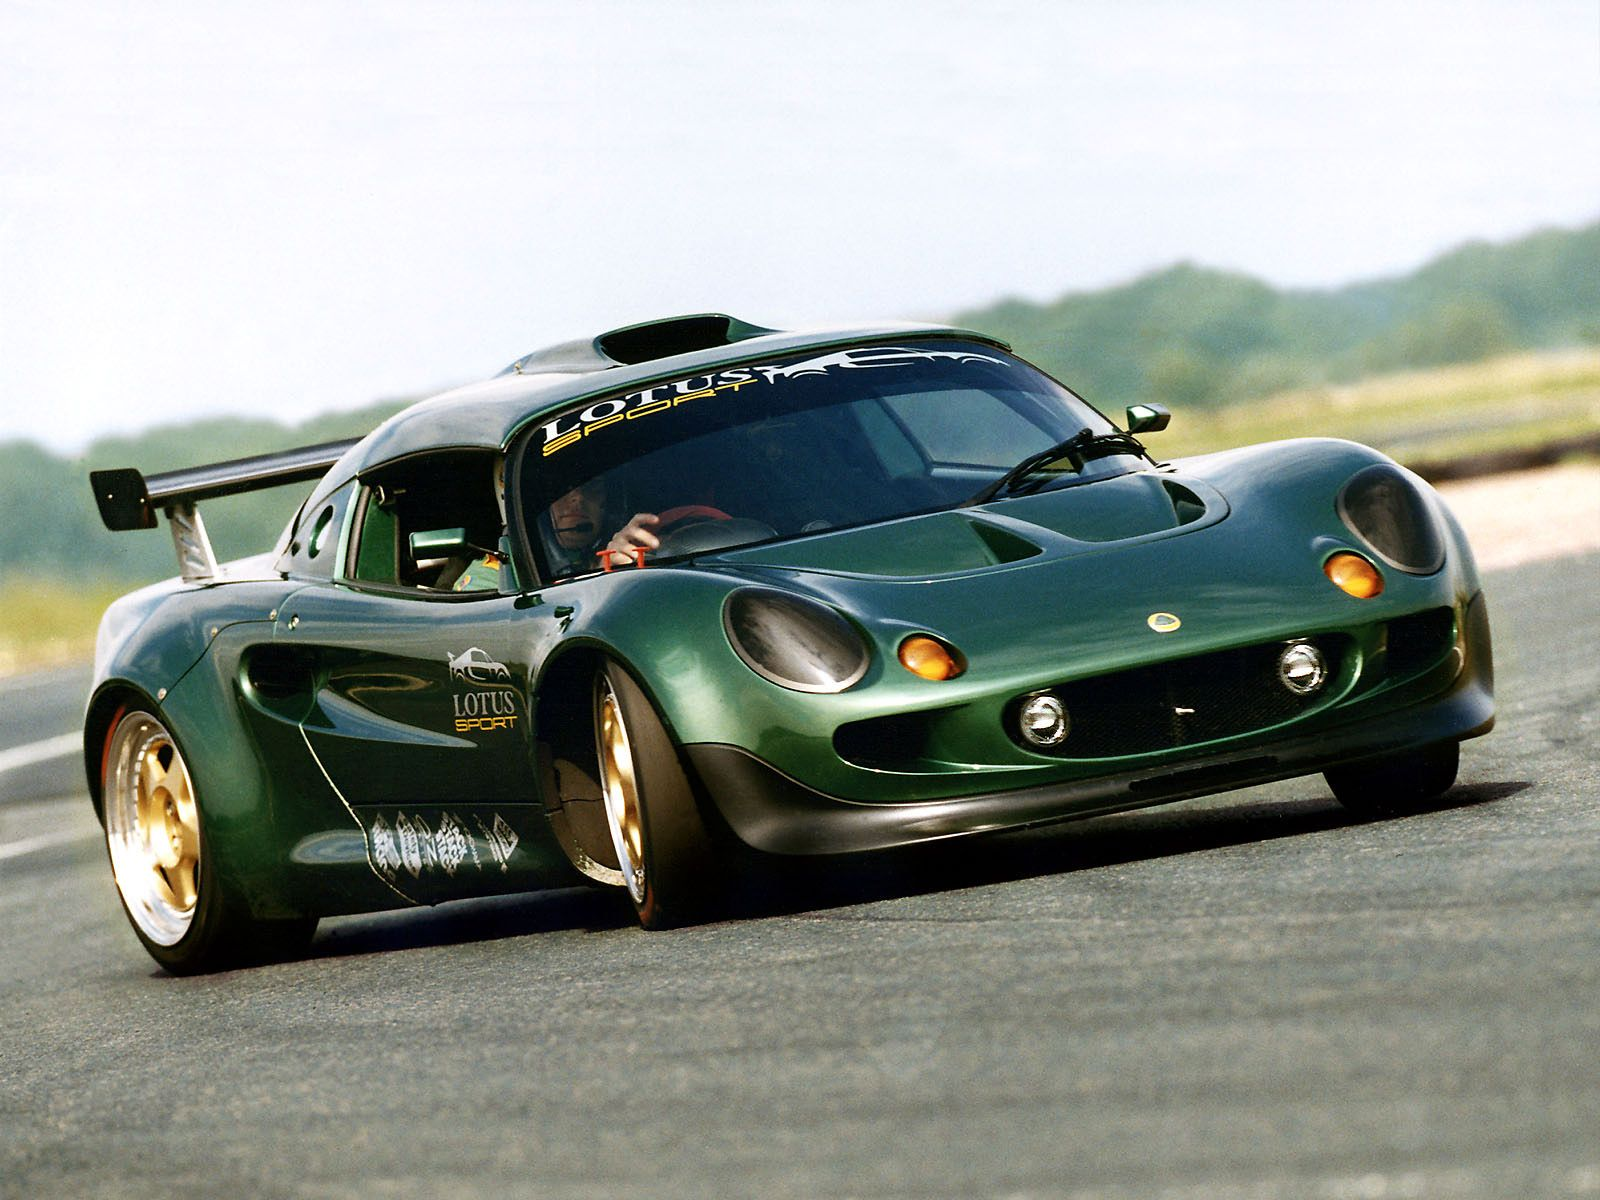 Lotus motorsport elise 2000 hd cars photos and wallpapers